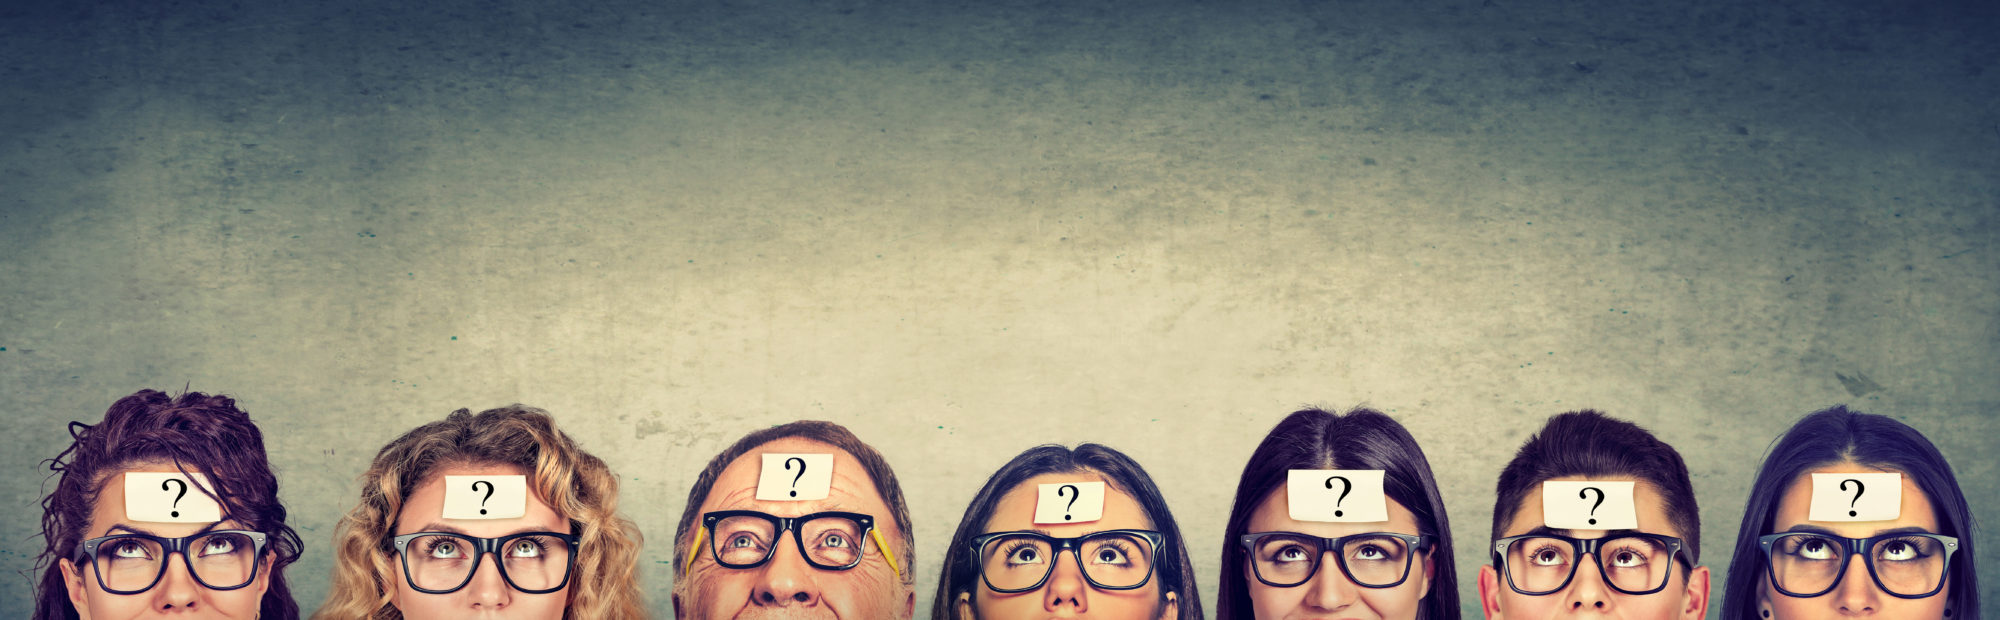 Multiethnic group of thinking people in glasses with question mark looking up